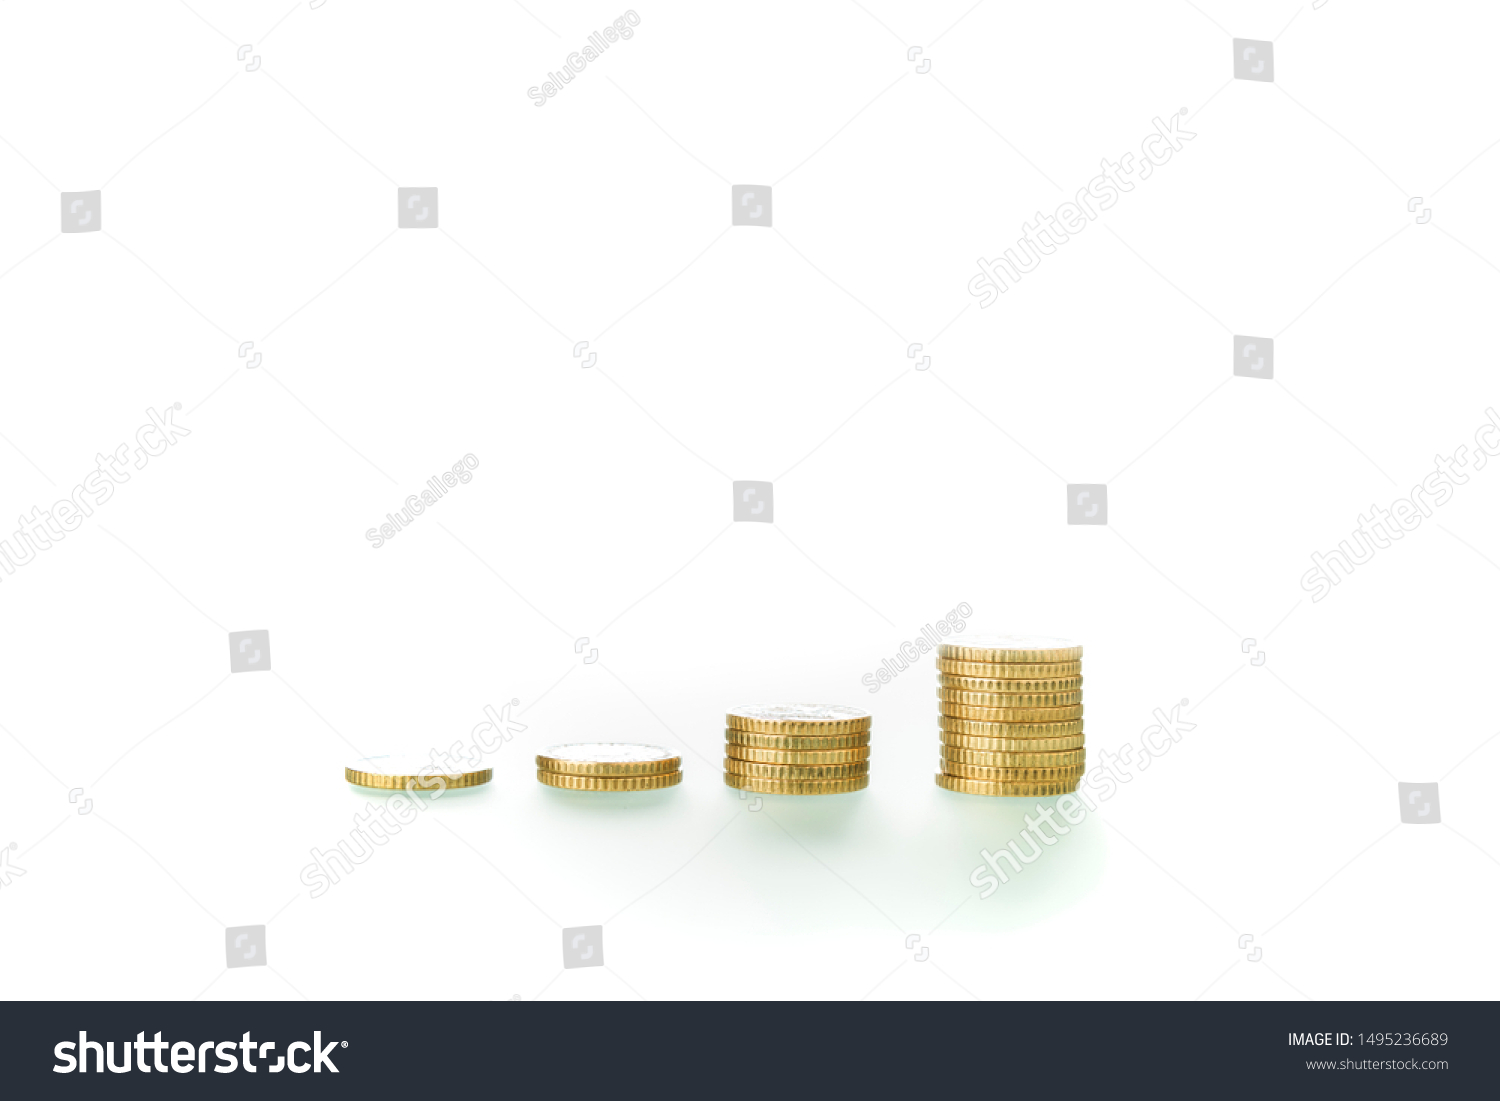 Coins grouped in uneven piles on white background, showing the concept of economic ascent and rising economy.